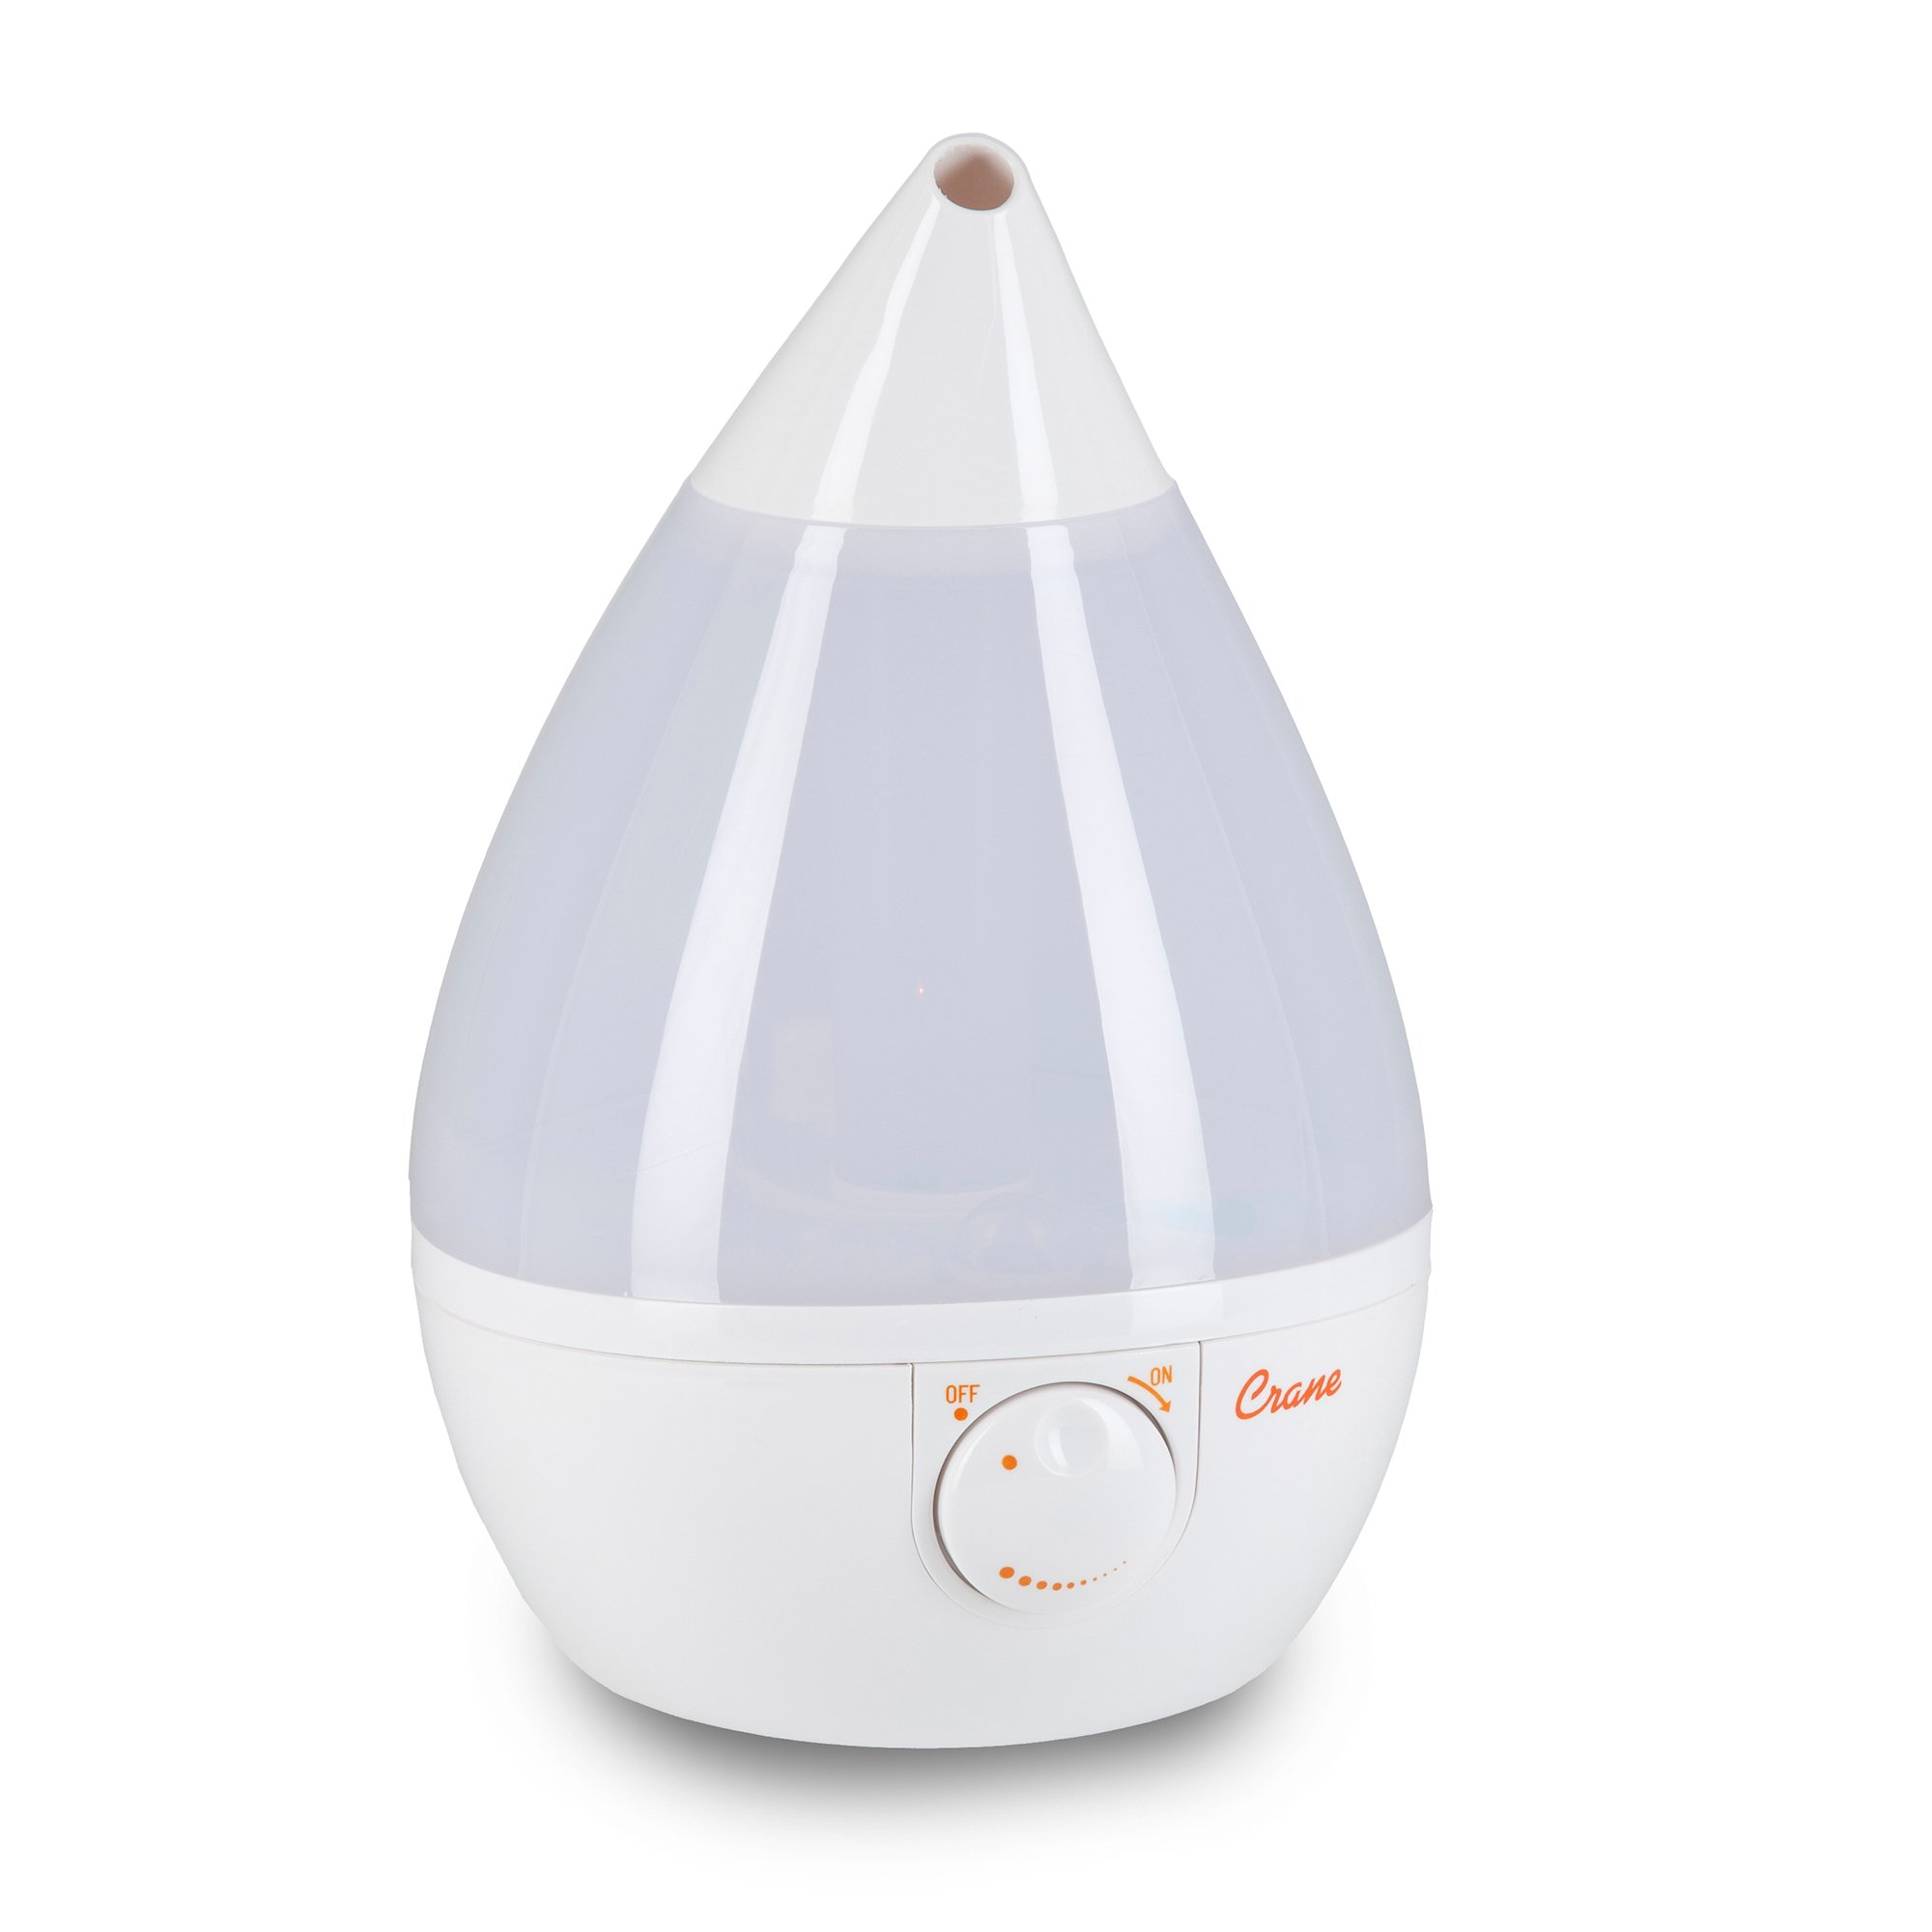 Crane USA Humidifier, Cool Mist, White